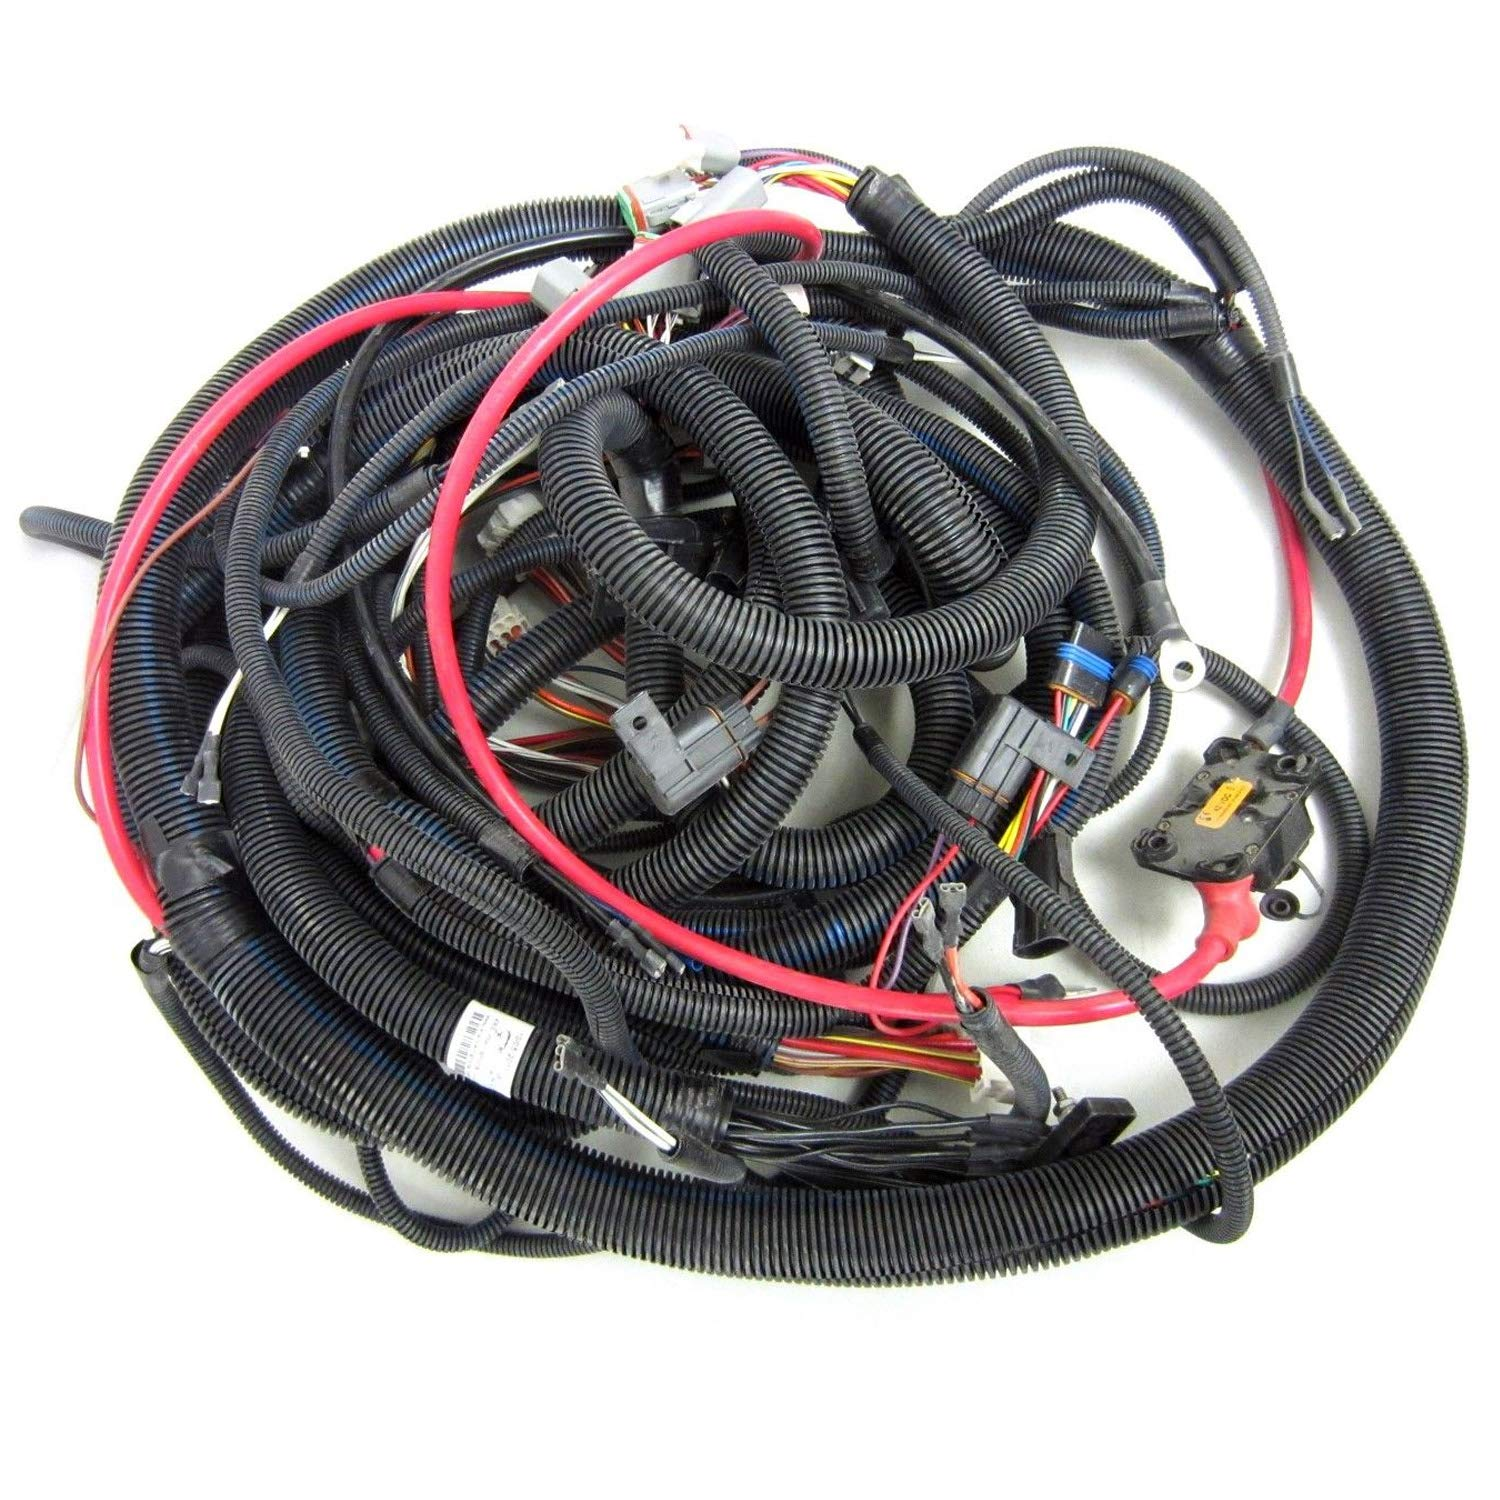 Amazon.com: Sea-Doo New OEM Sport Boat Accessories Wiring ... on